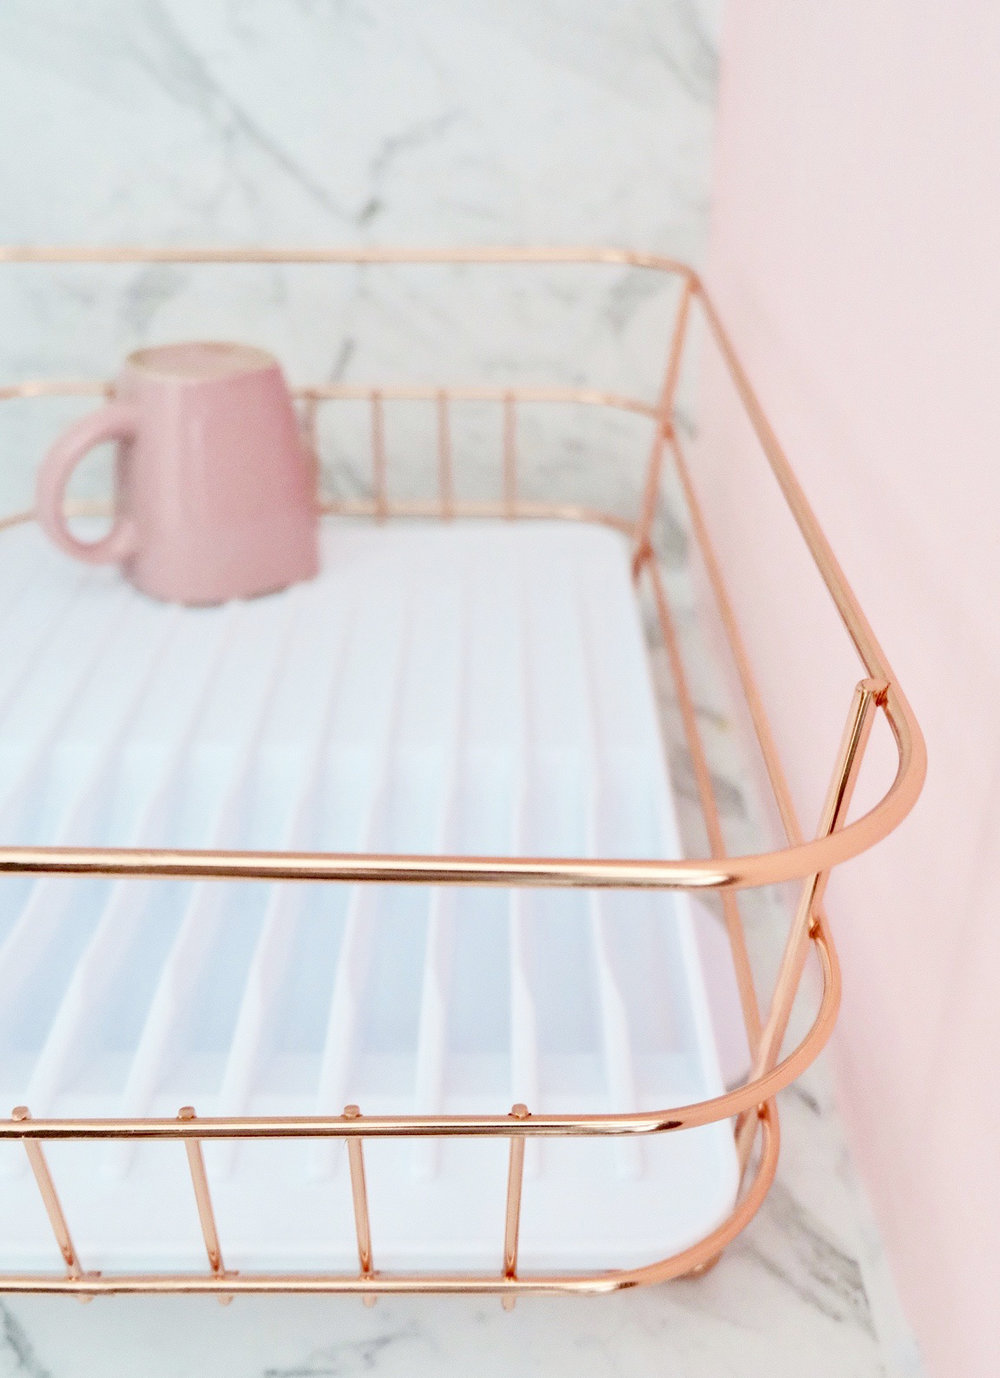 I even add Rose Gold Dish Rack! If they have come in Gold, I would buy it in a heartbeat!